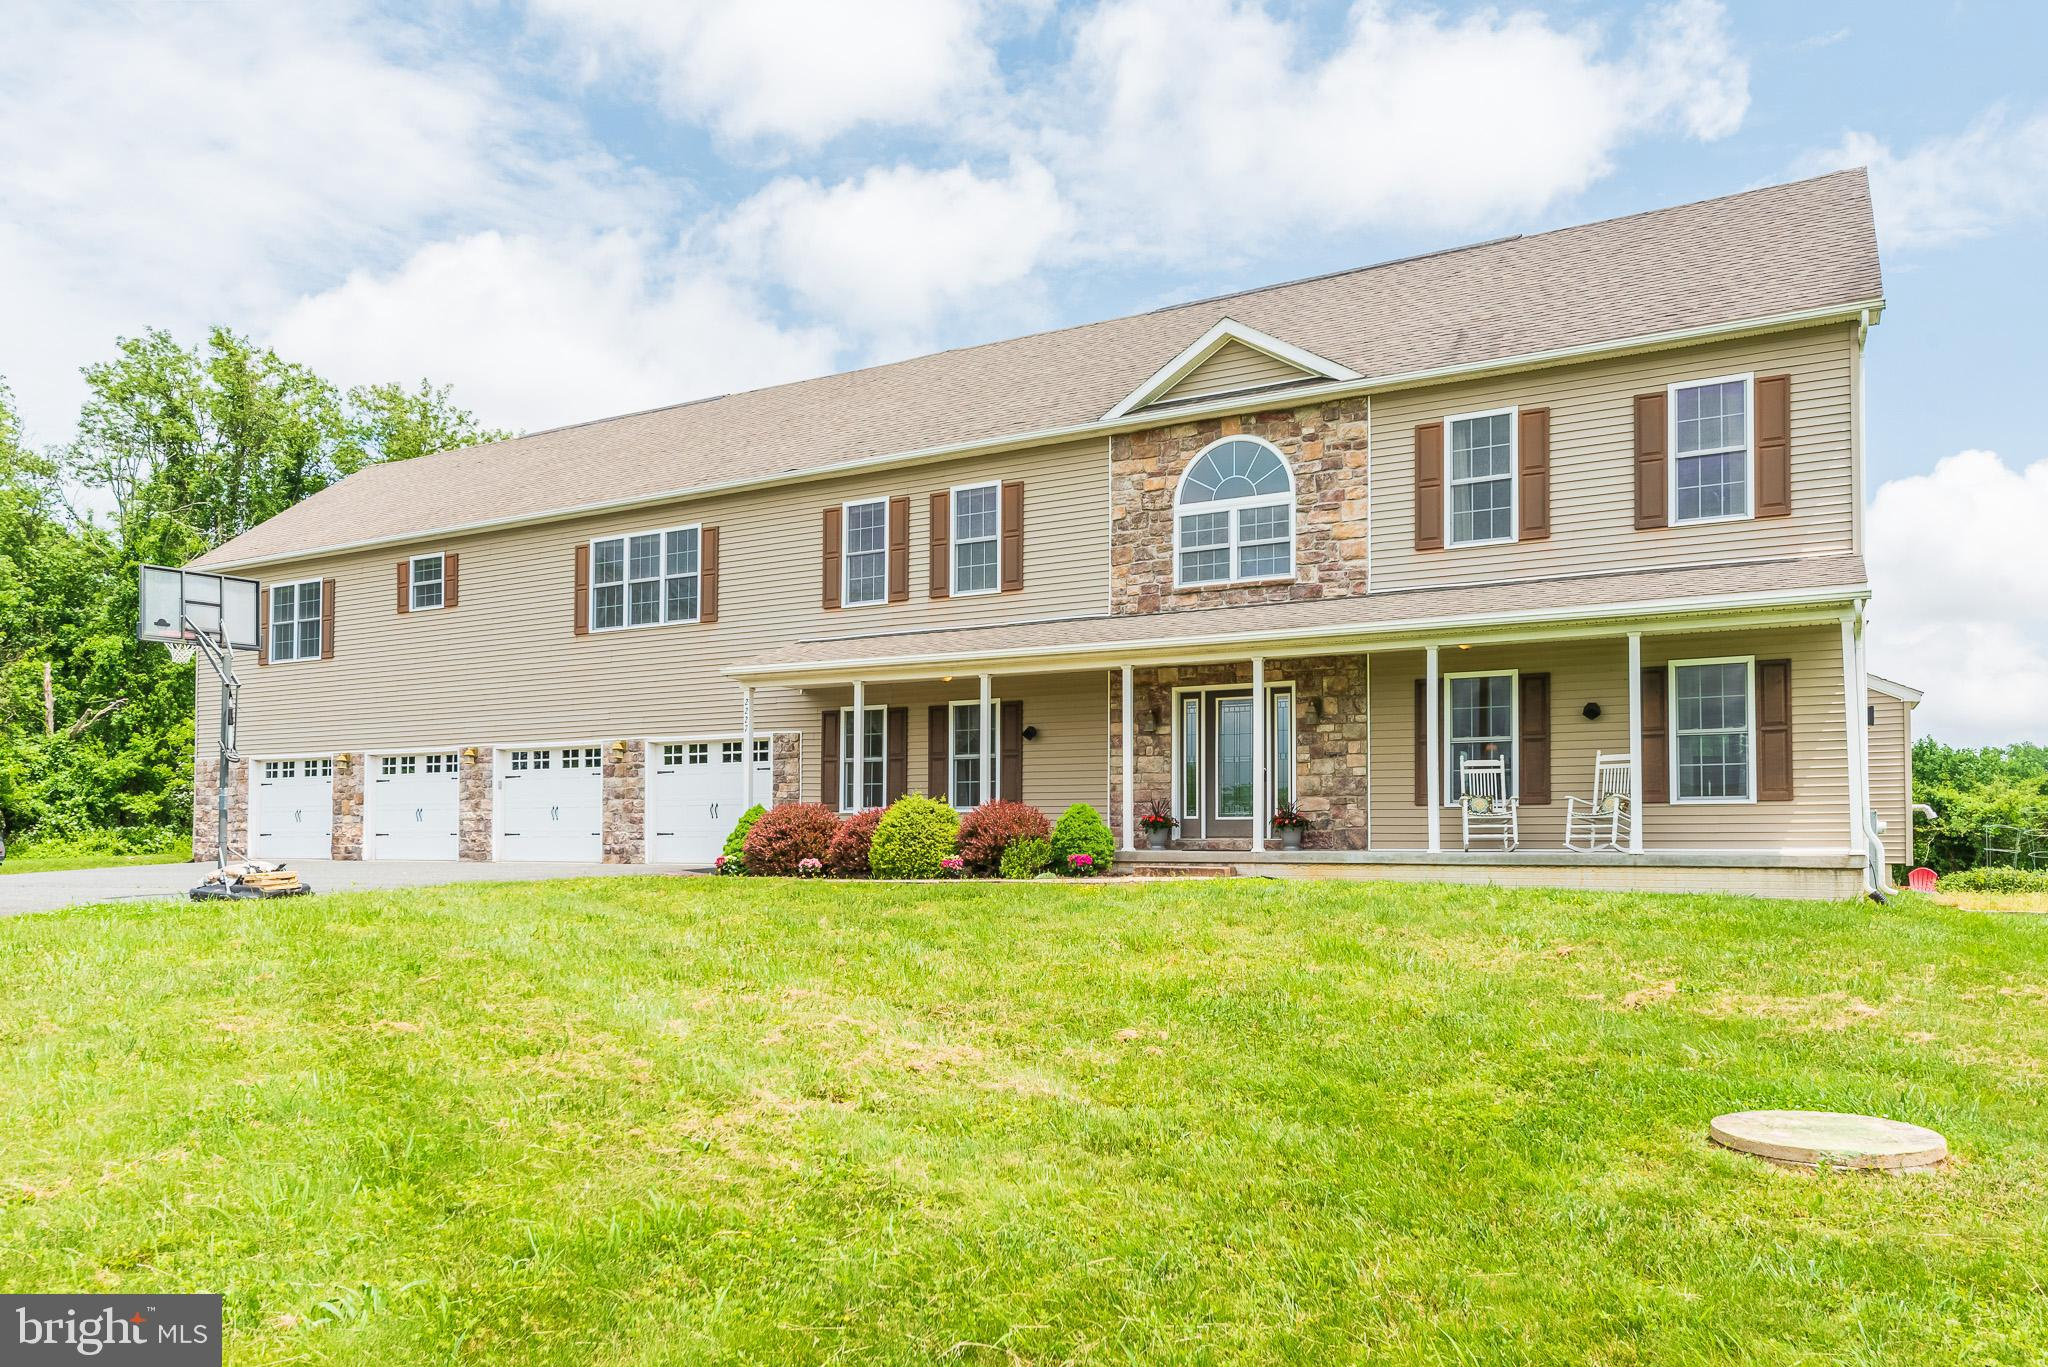 2227 Ady Rd, Forest Hill, MD, 21050